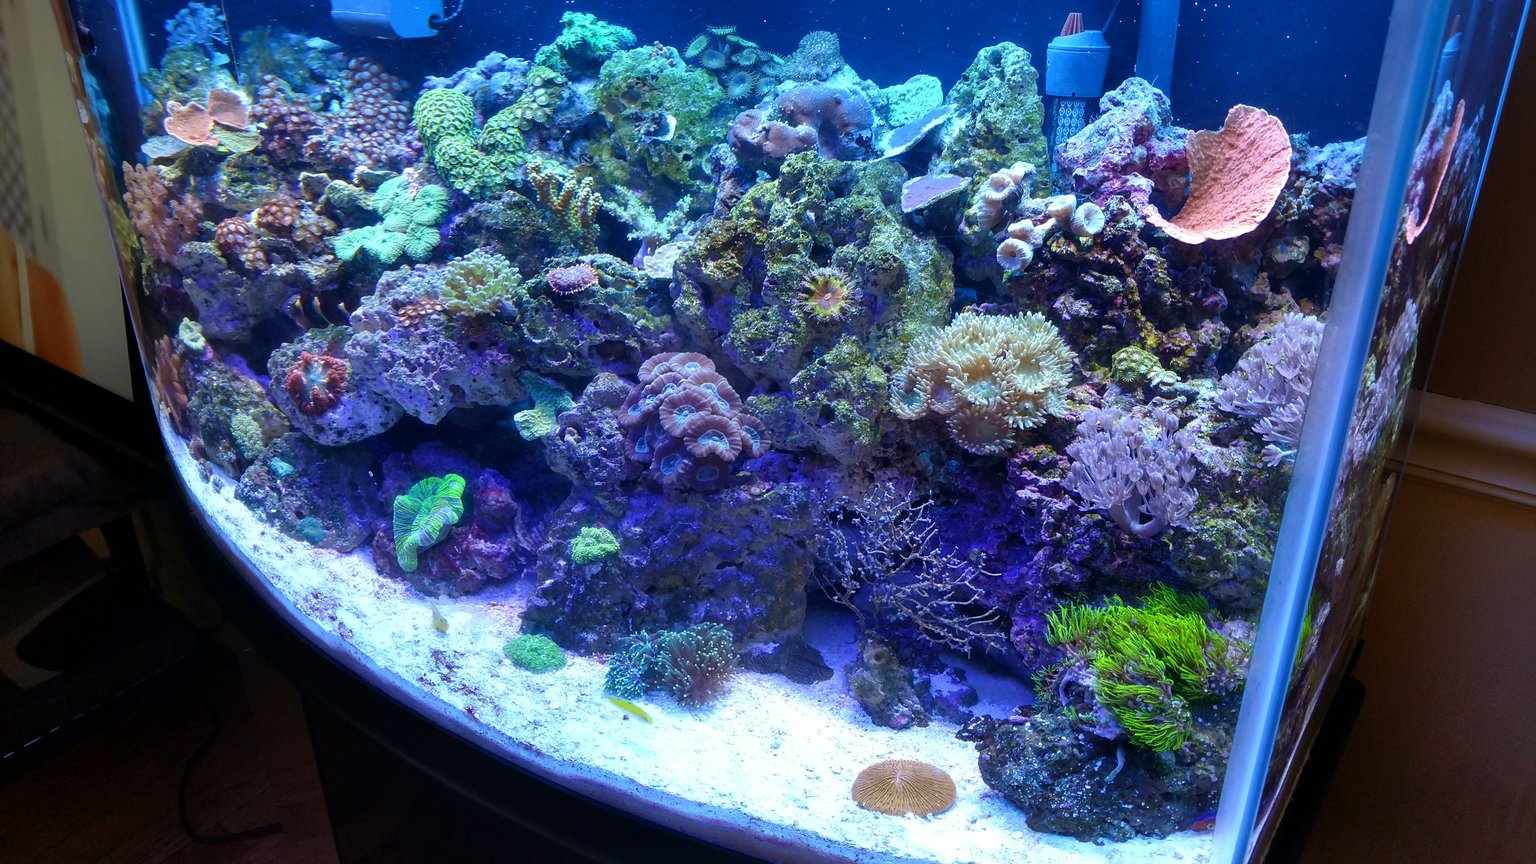 46 gallons reef tank (mostly live coral and fish) - 46gal reef tank This tank is only been going 4 months, going well so far! So glad I got back into this hobbie after a 7 year hiatus! Still battling the new tank alge and cynical but I'm fighting it.